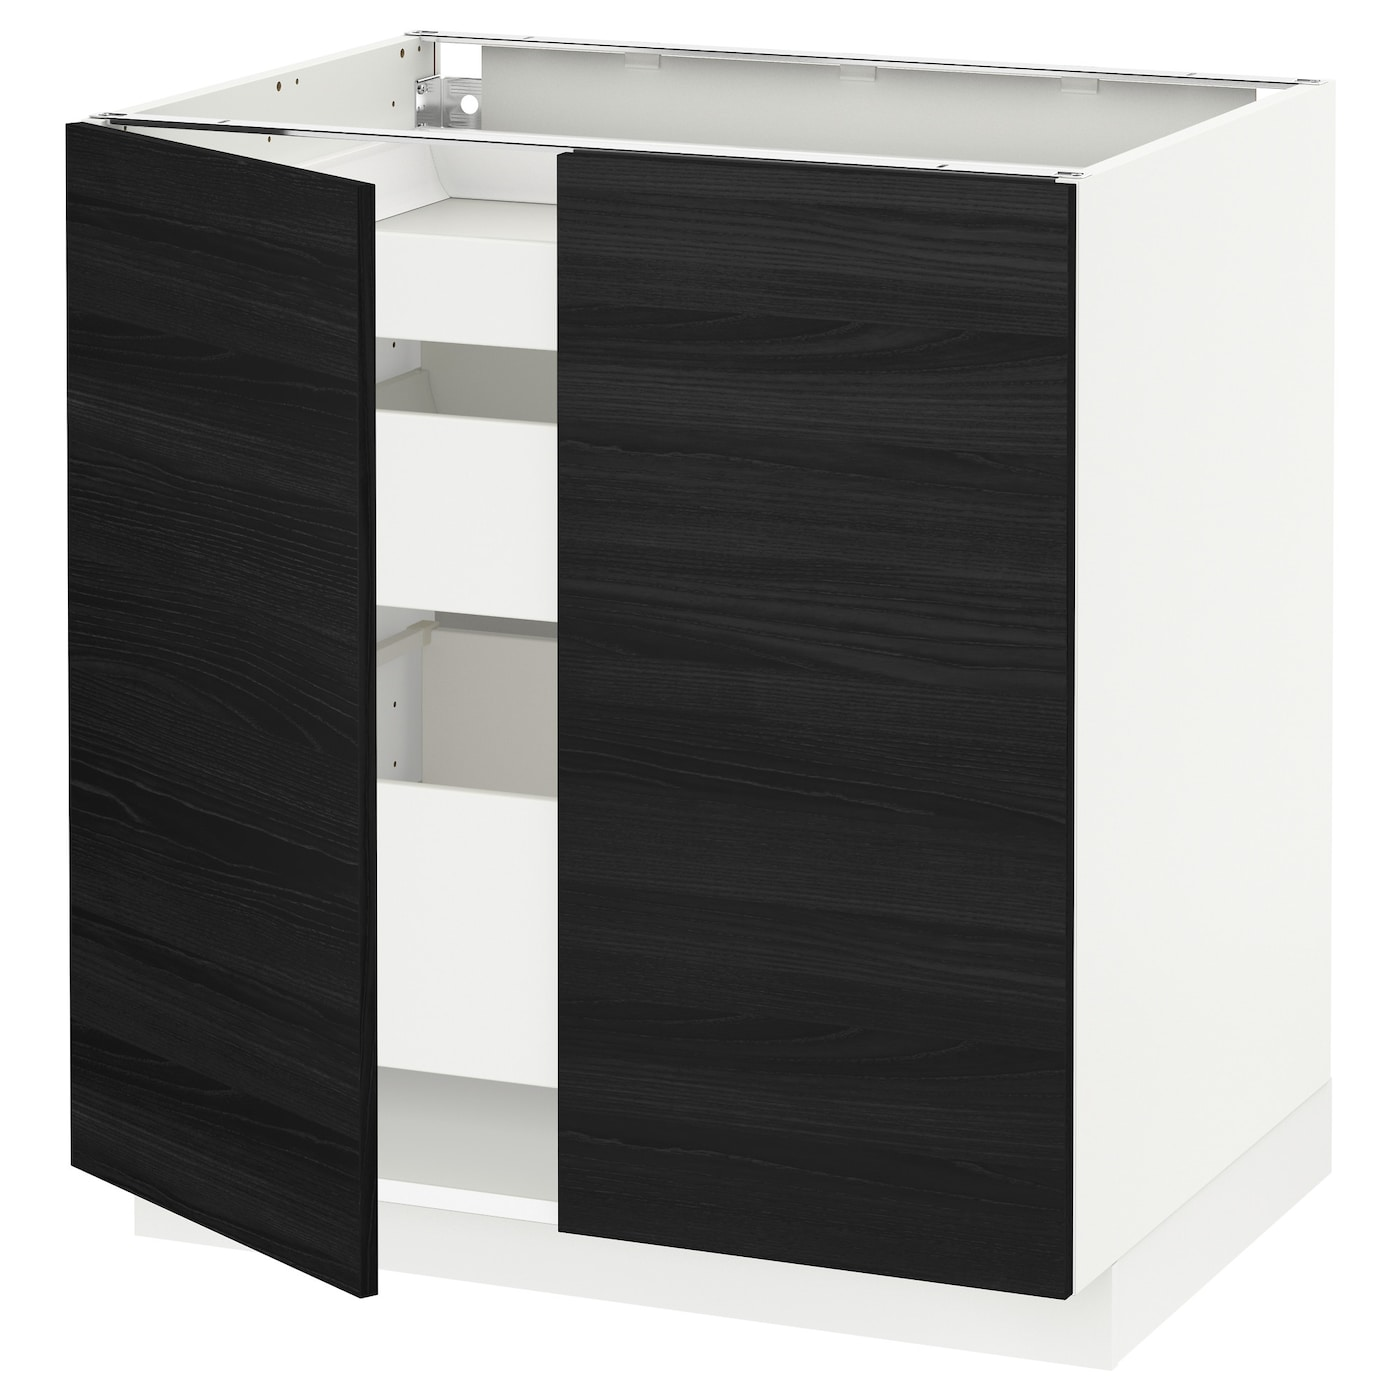 metod maximera onderkast met 2 deuren 3 lades wit tingsryd zwart 80x60 cm ikea. Black Bedroom Furniture Sets. Home Design Ideas